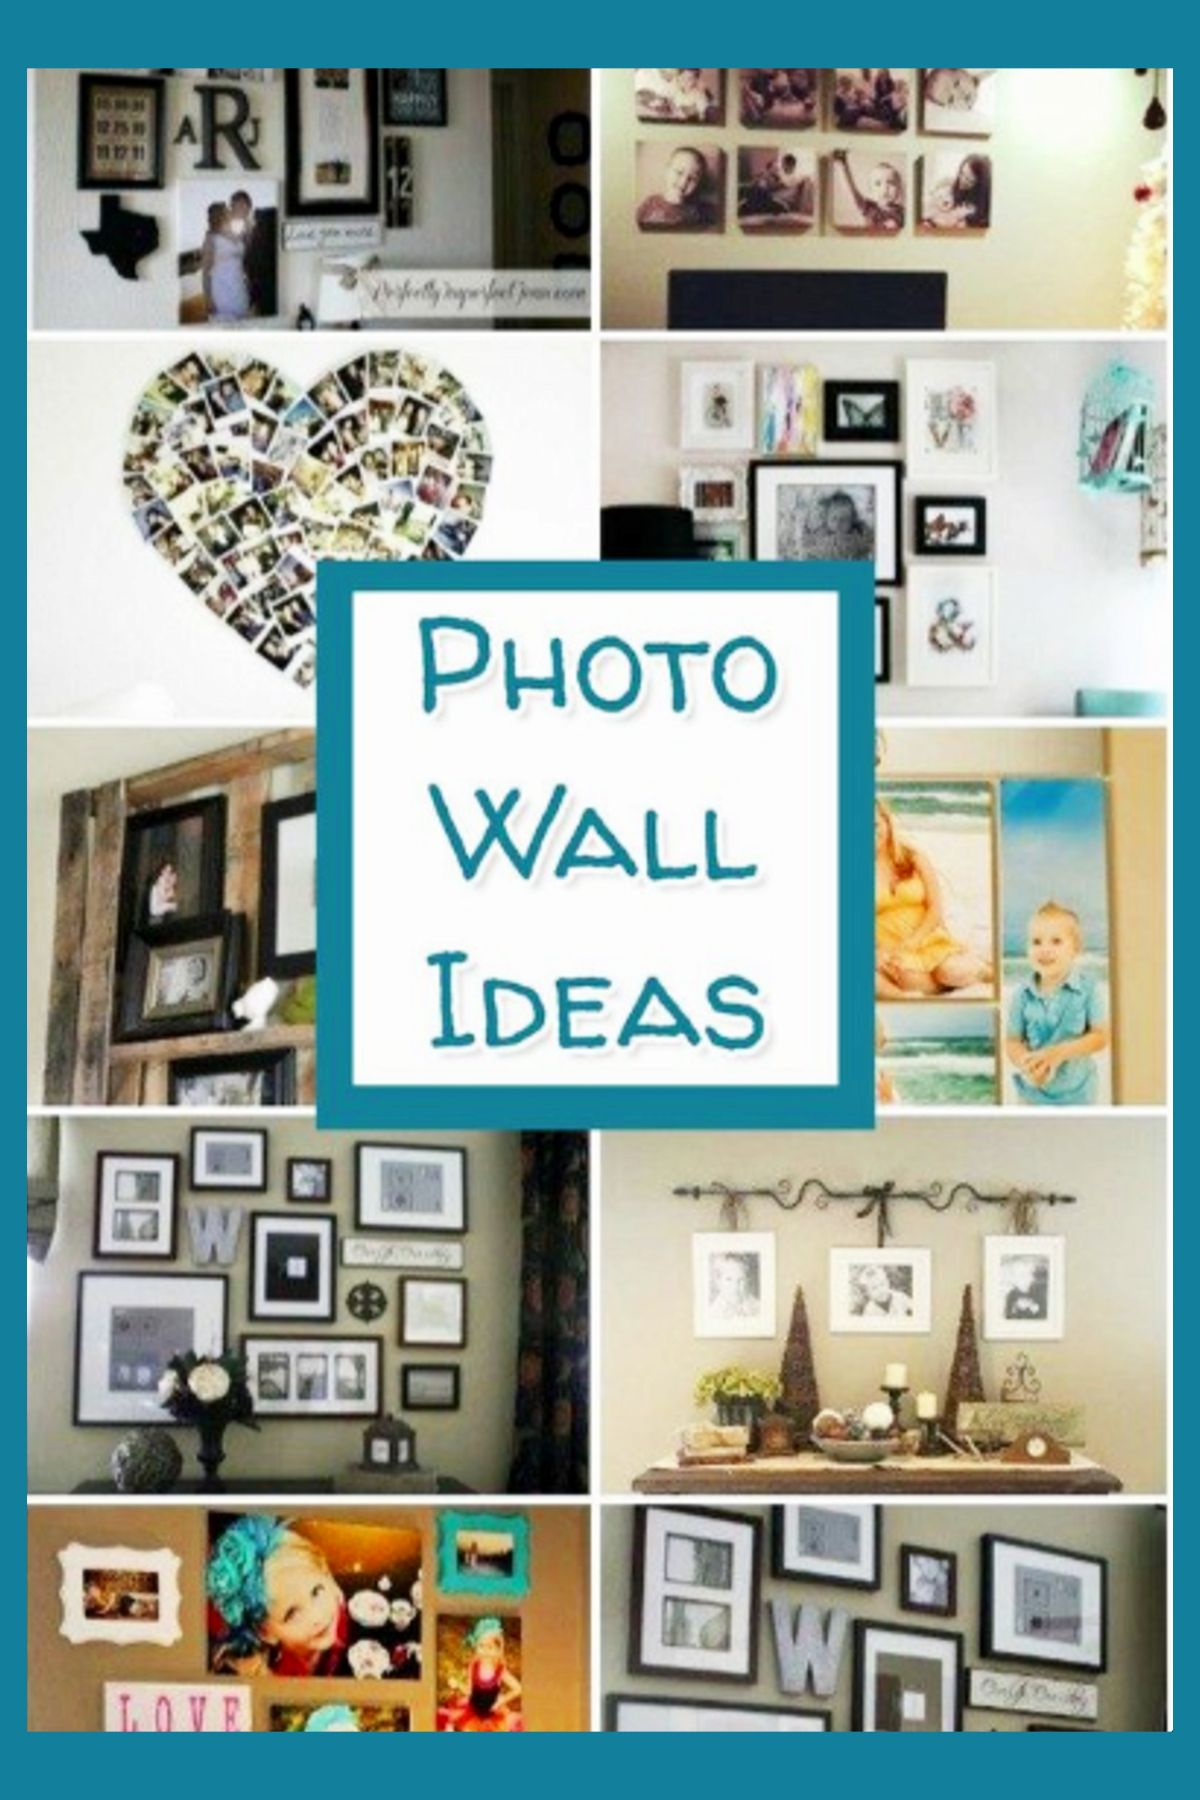 Photo Wall Ideas 37 Picture Gallery Wall Layout Ideas For The Perfect Family Photograph Accent Wall Diy Gallery Wall Gallery Wall Layout Gallery Wall